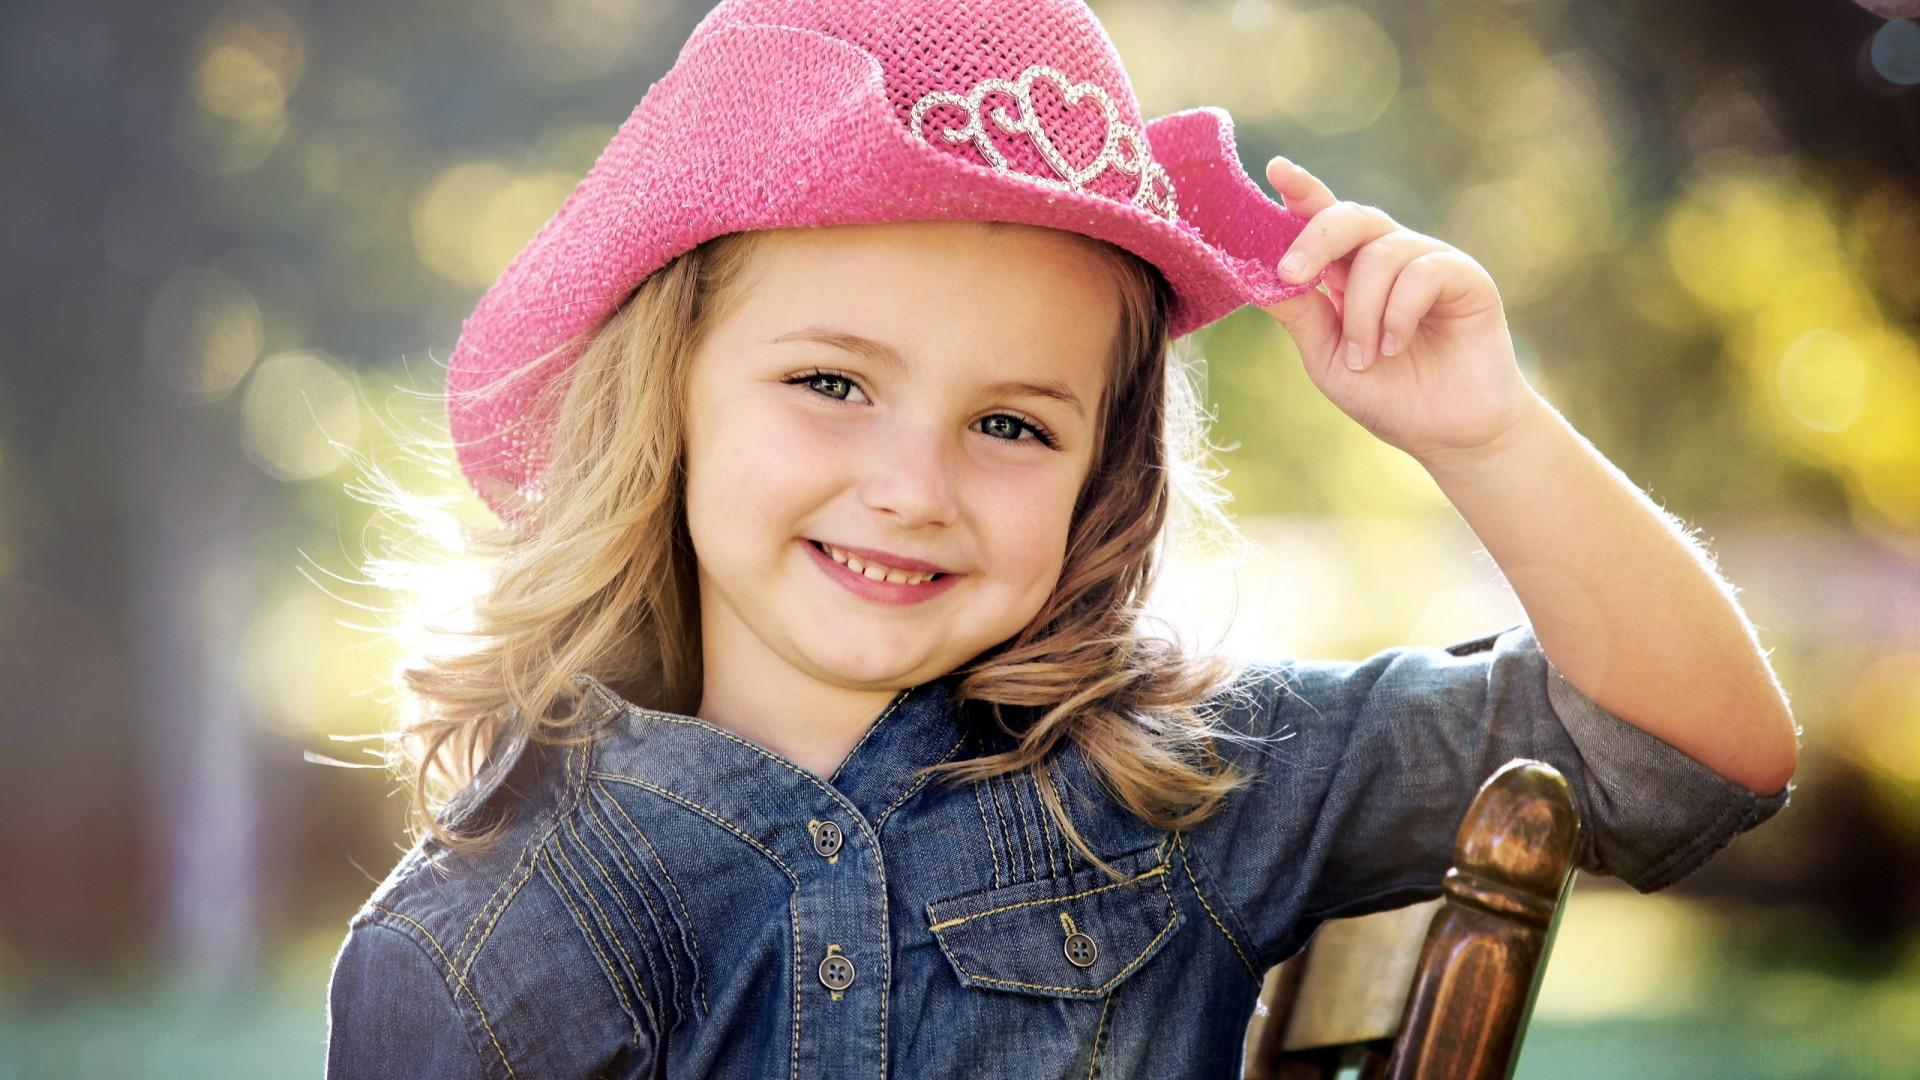 Baby-Girl-With-Hat-HD-HD-wallpaper-wpc9002521